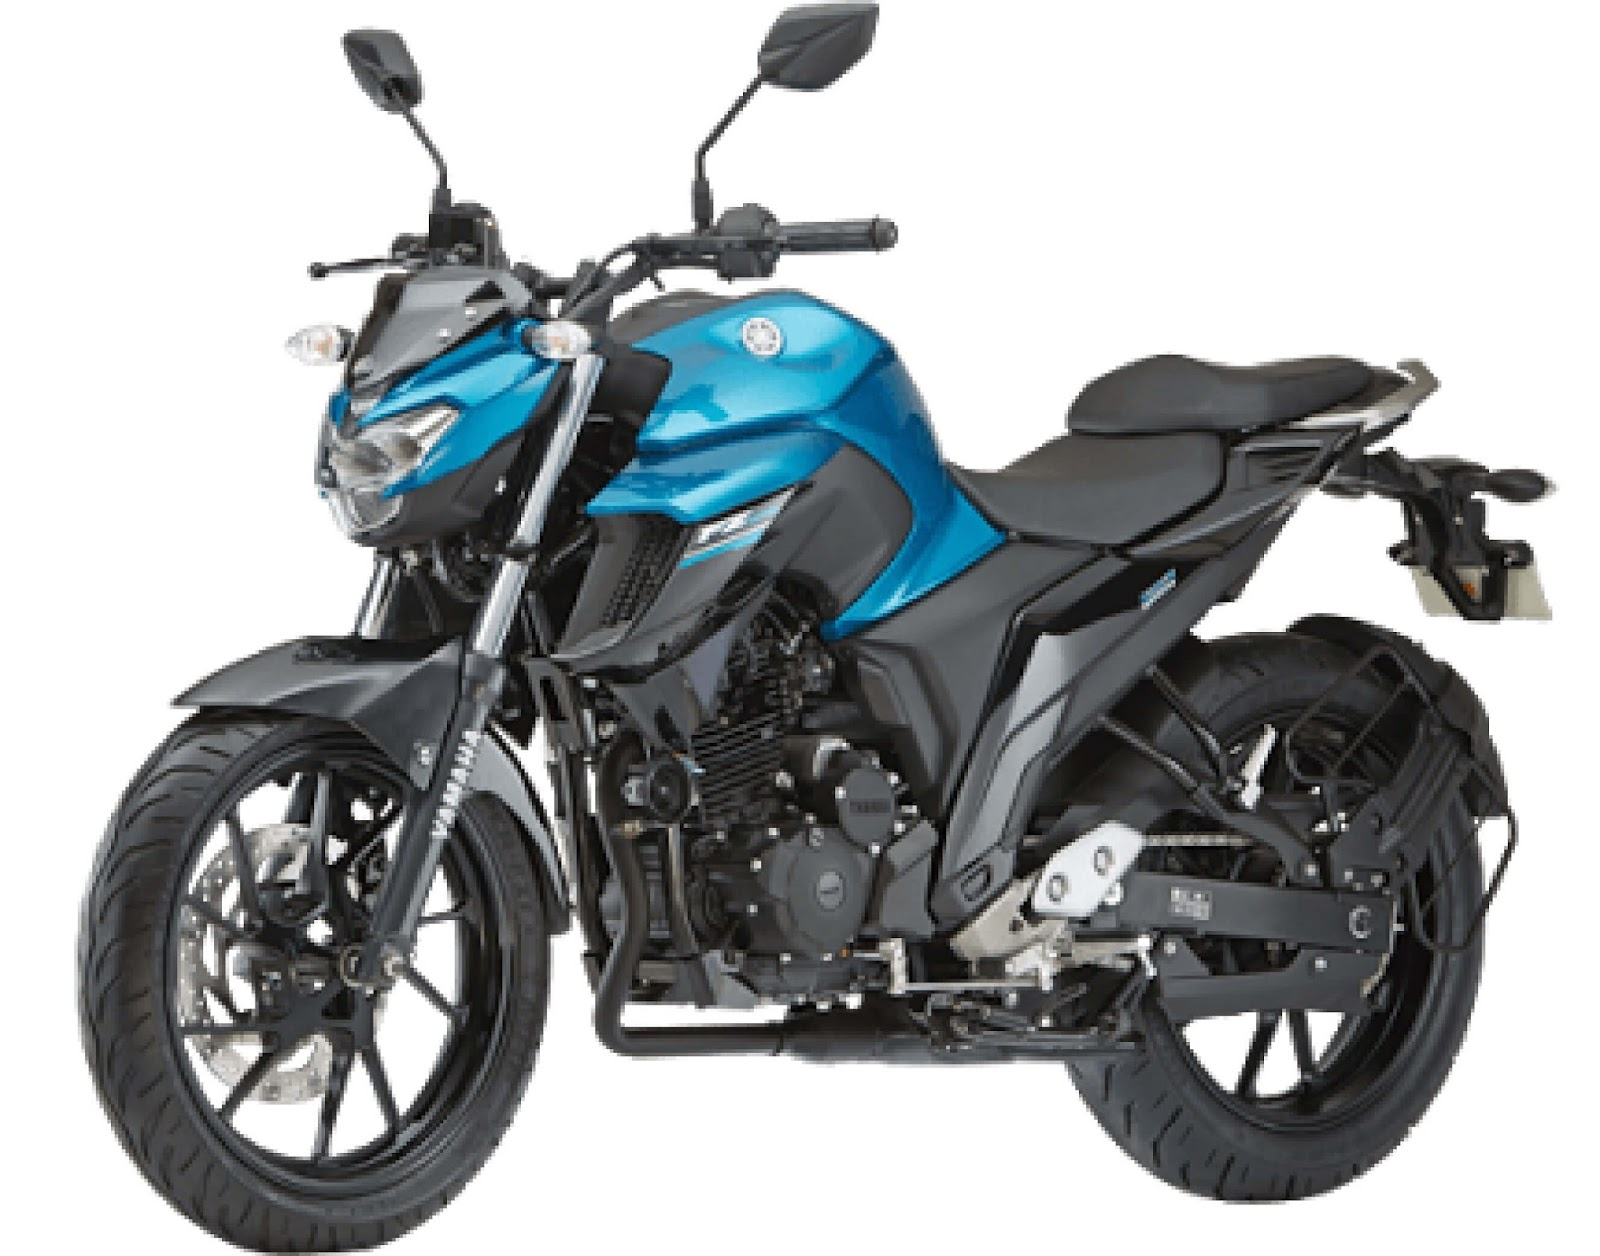 Fz Version 2 Black Colour >> Yamaha FZ 25 (Vietnam) - Ms-Blog